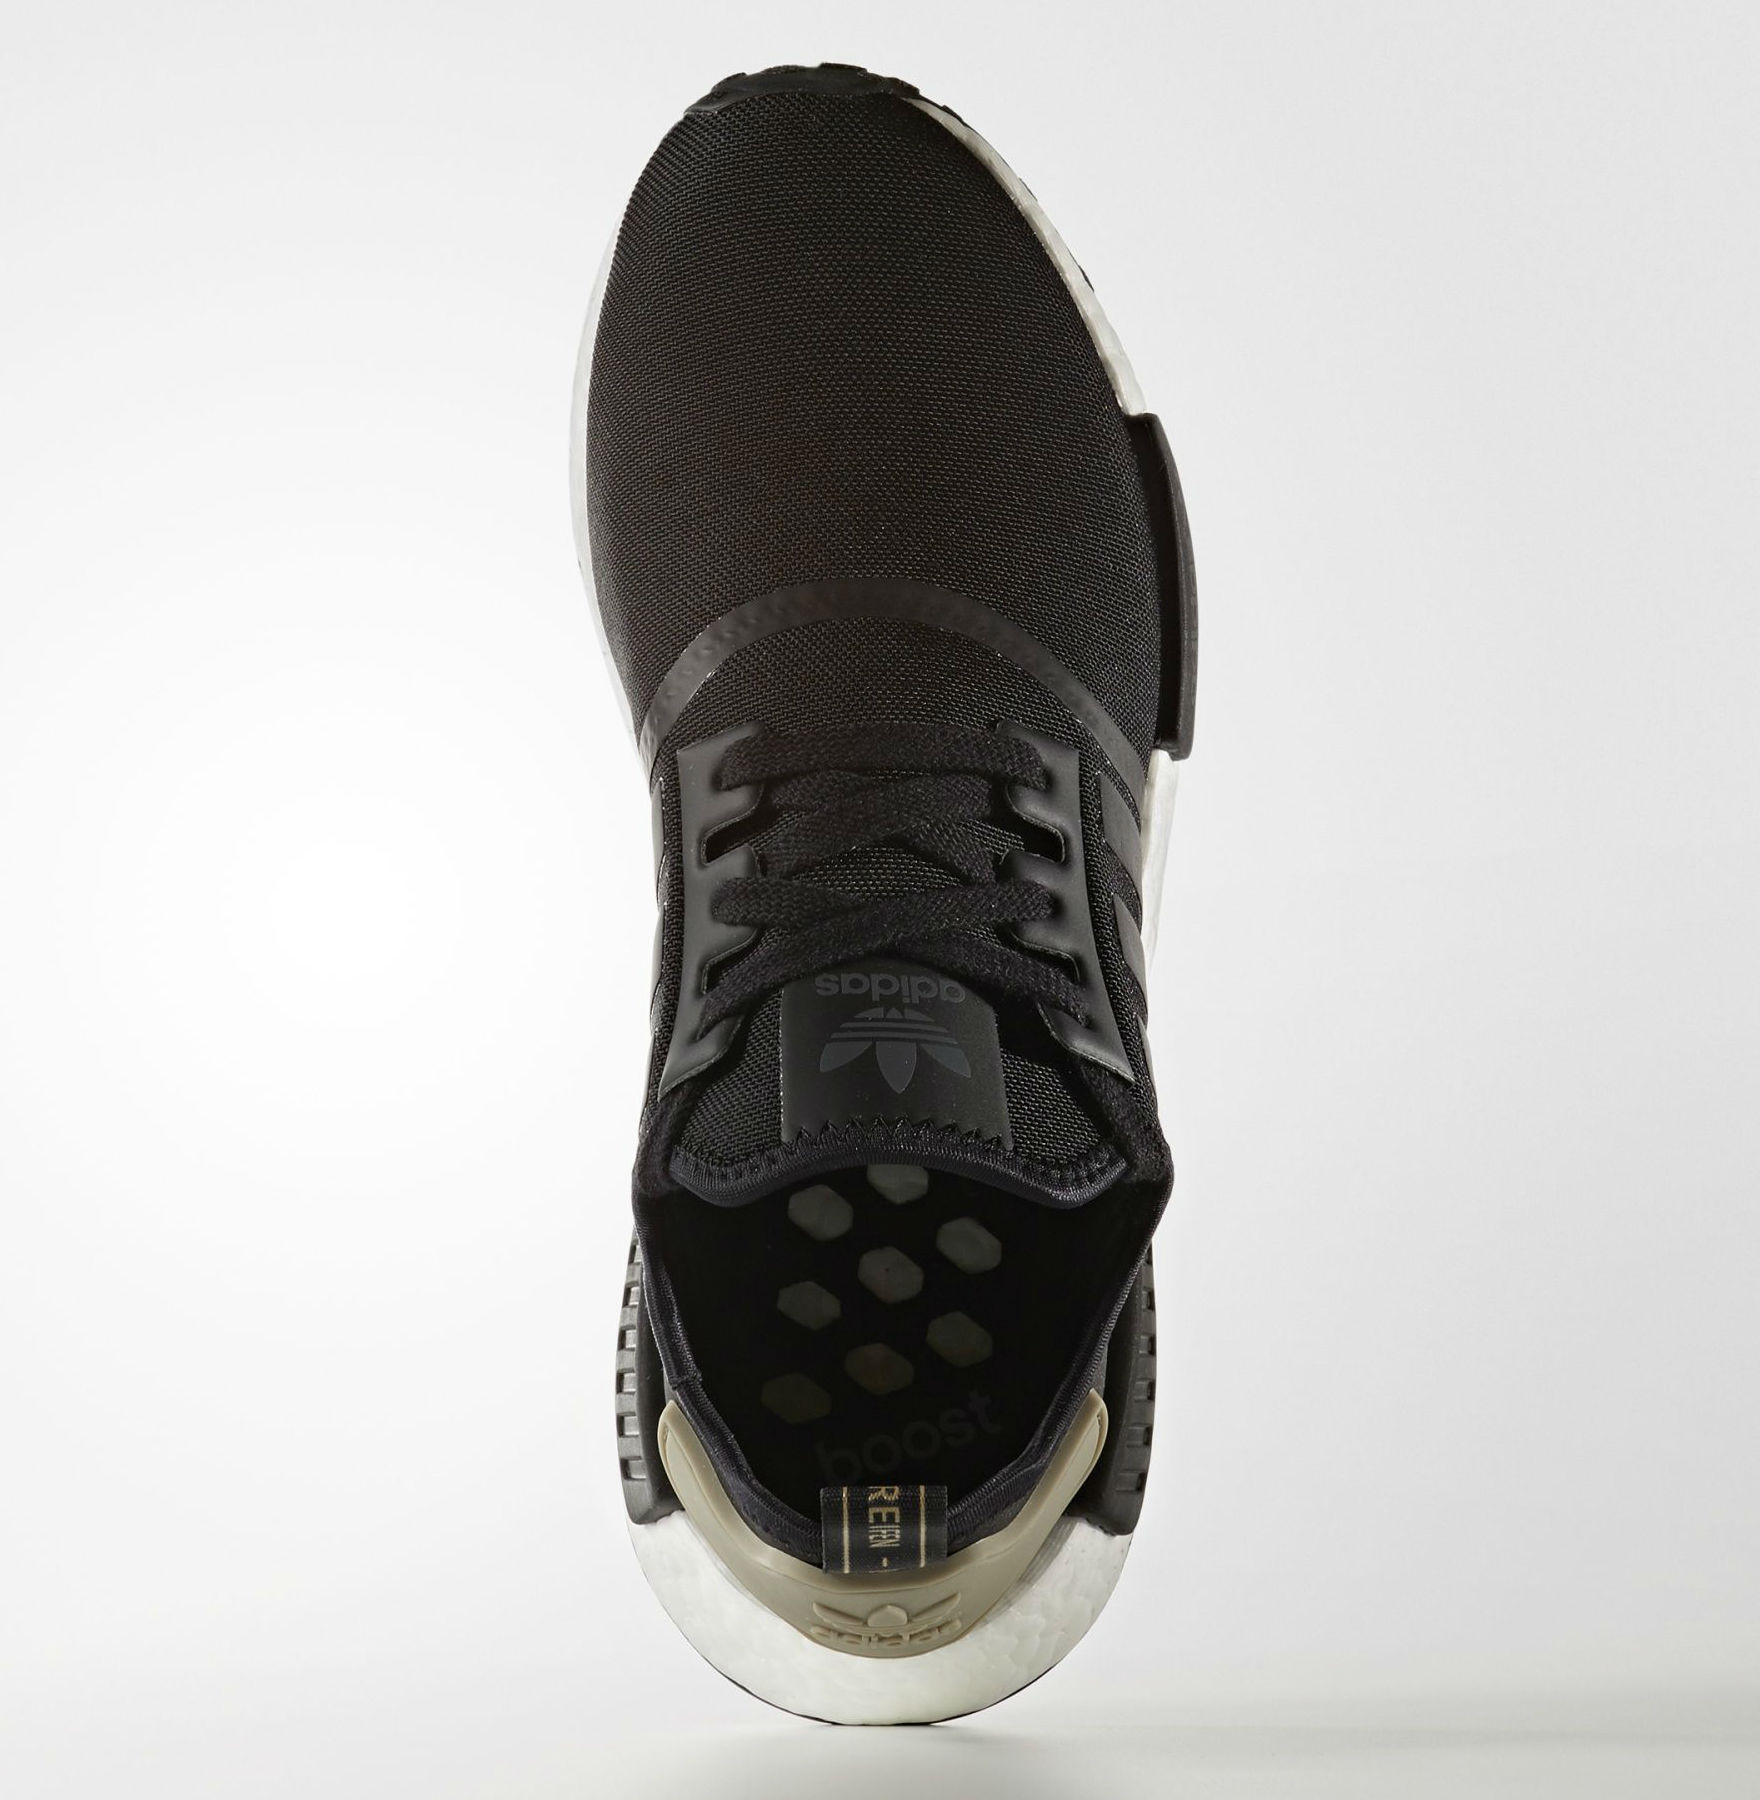 adidas NMD Black Cargo Top BA7251